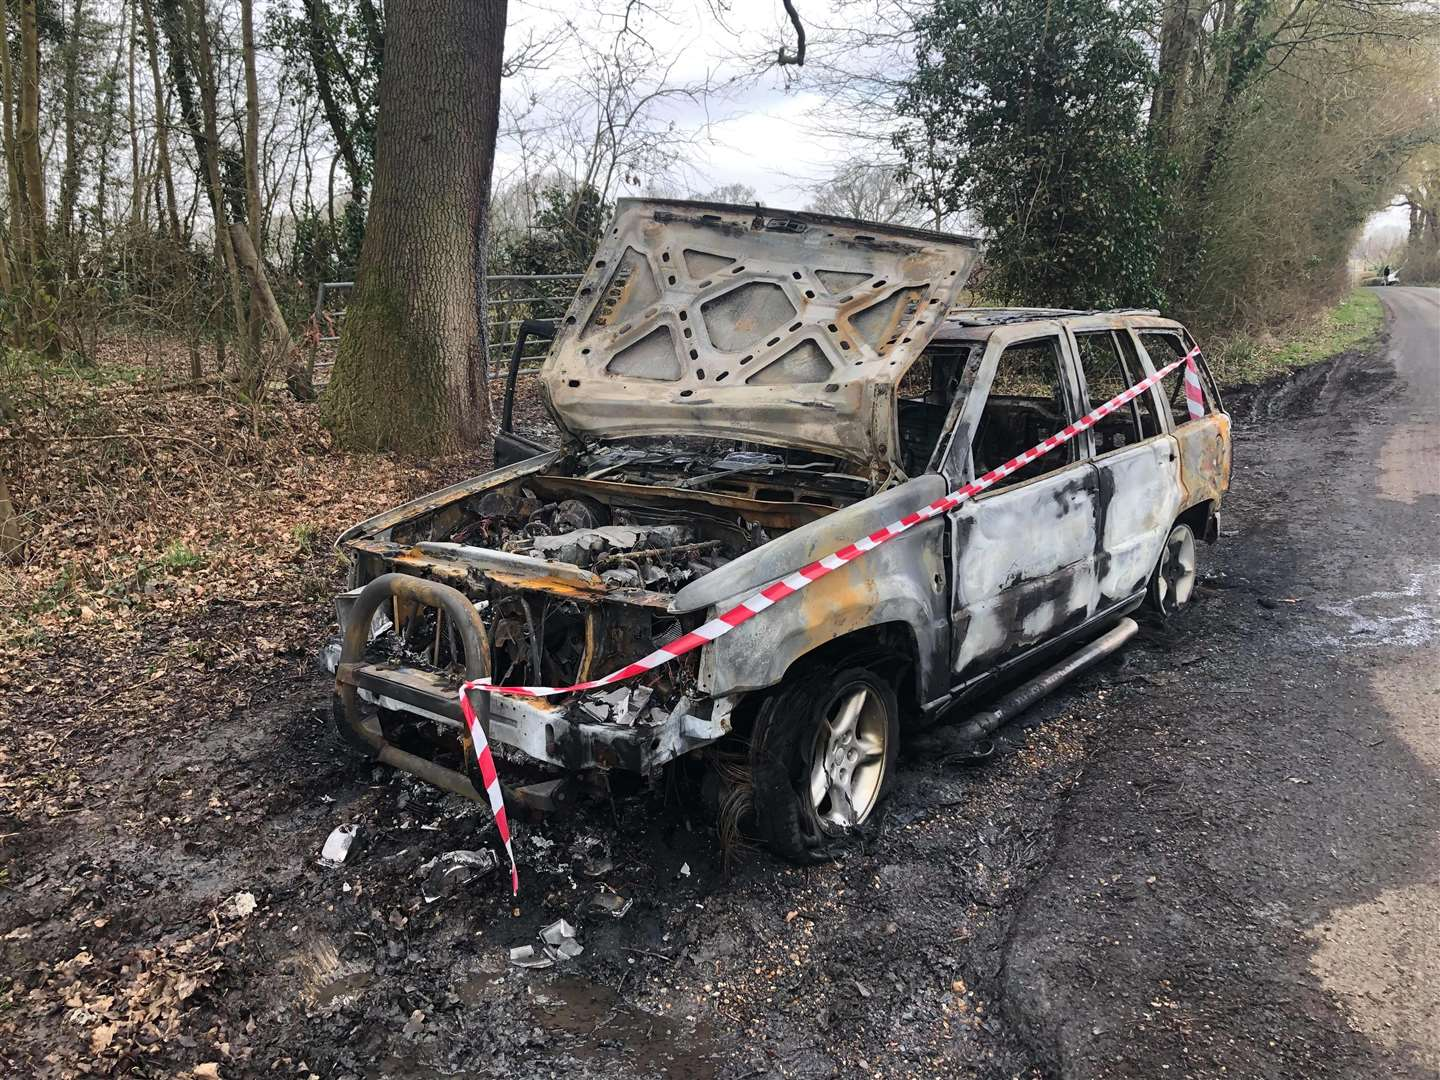 The vehicle used in the ram raid, which was torched soon after in Harbourne Lane